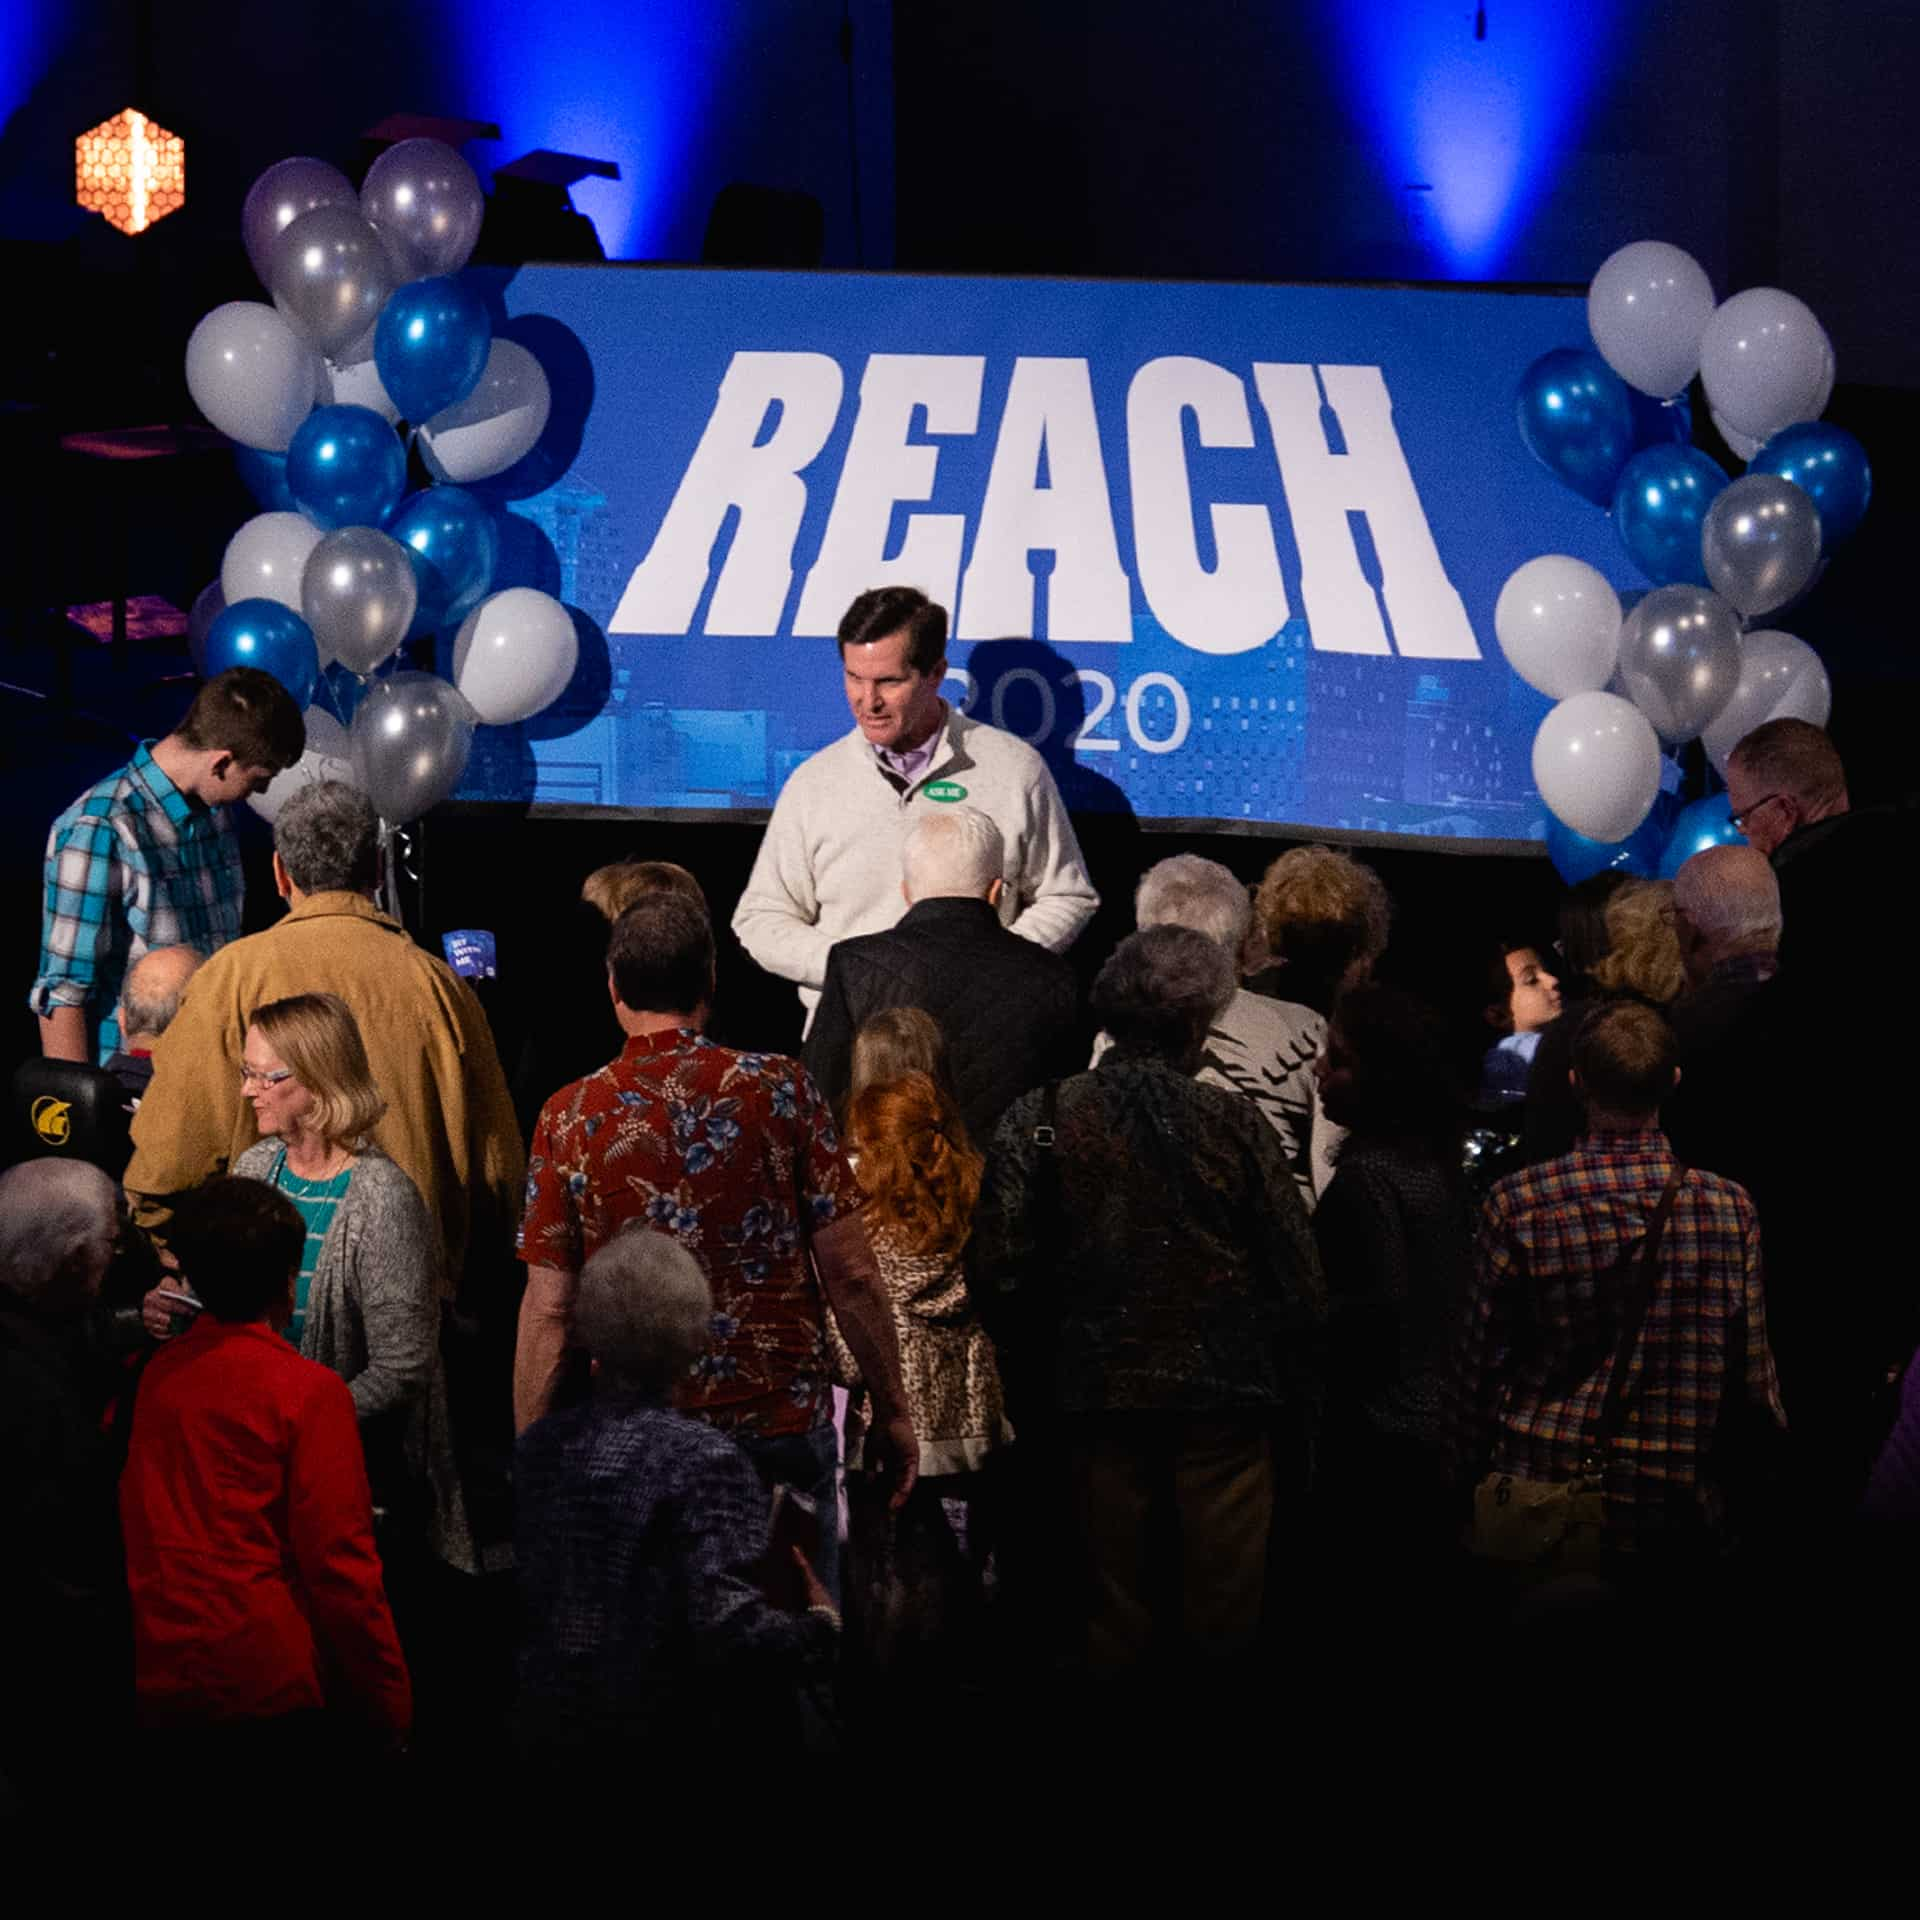 reach-2020-sunday-1x1